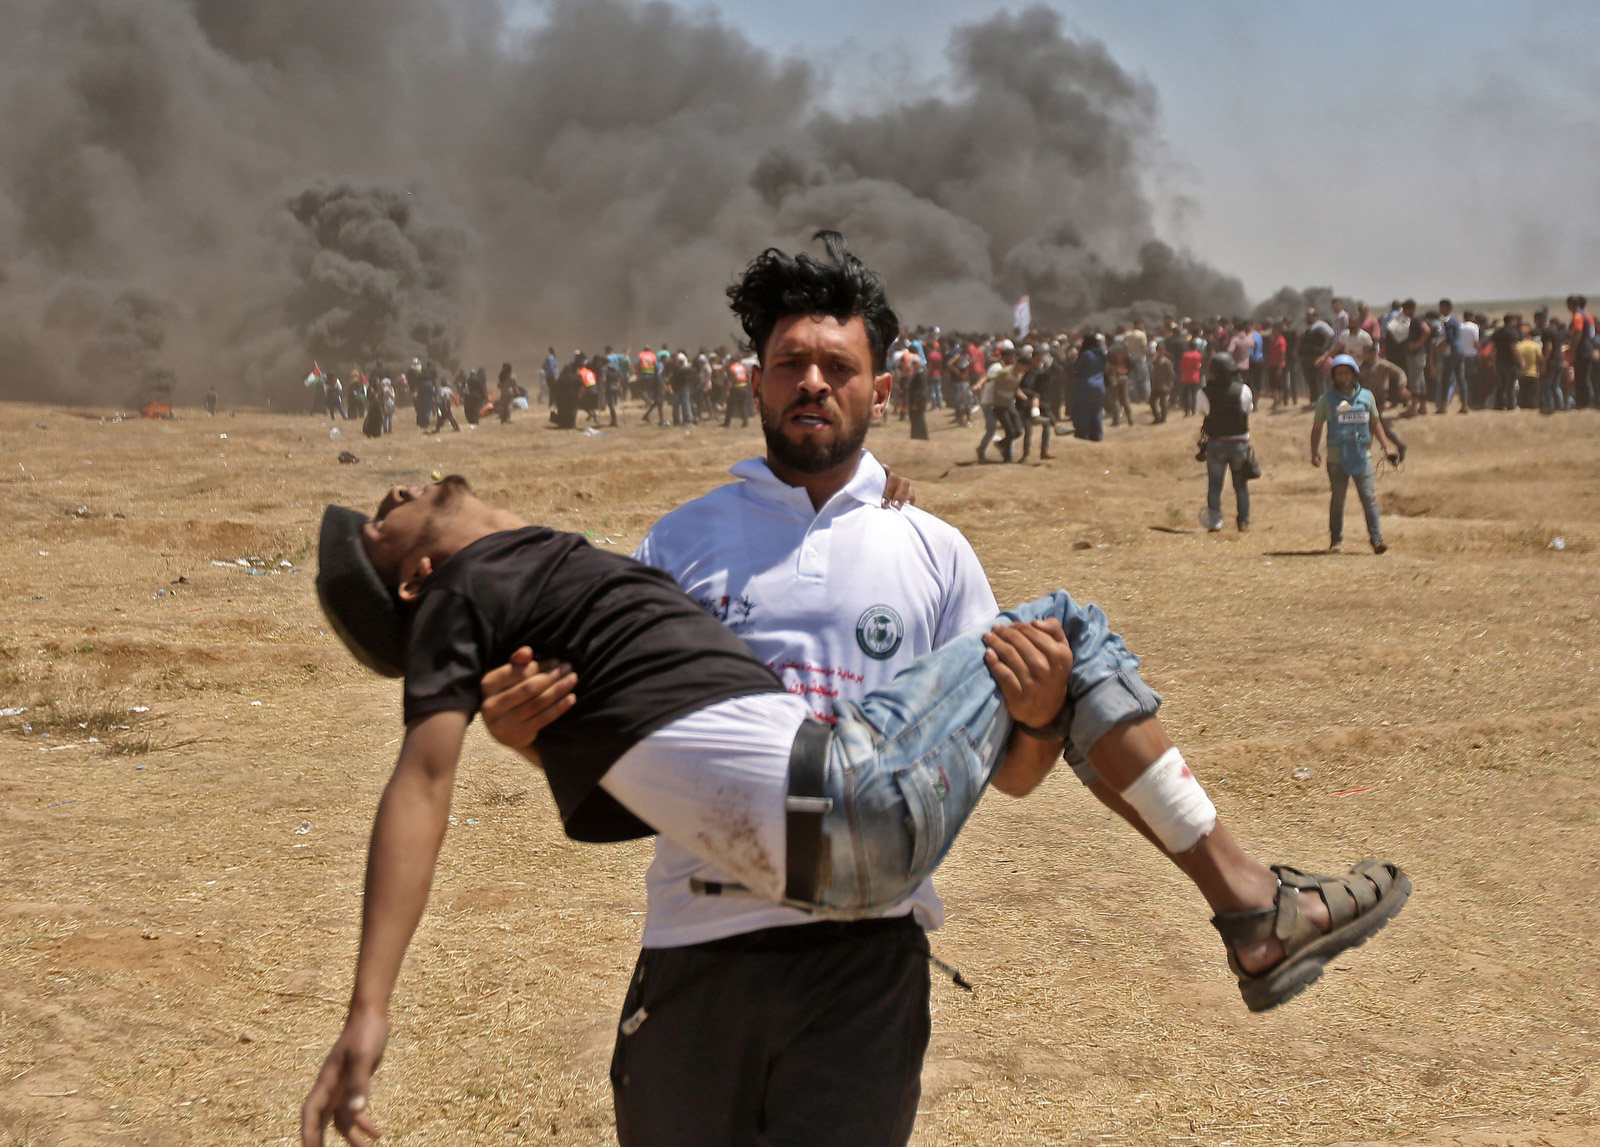 In pictures: Deadliest day in Gaza since 2014